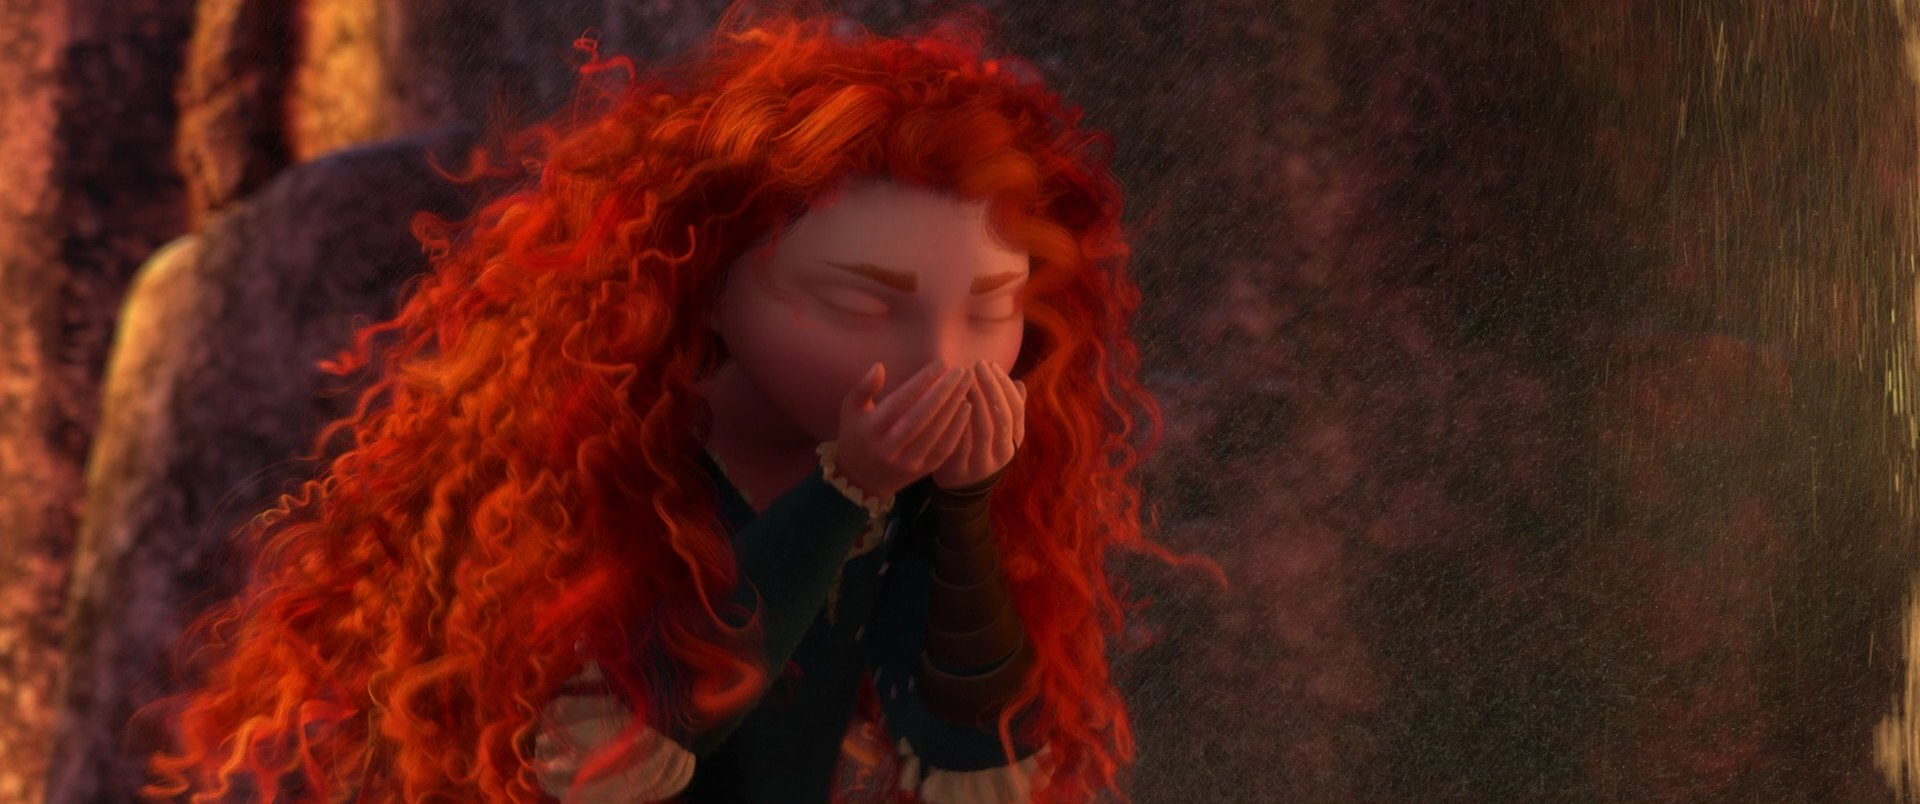 Brave Movie Screencaps Brave Photo 34371668 Fanpop